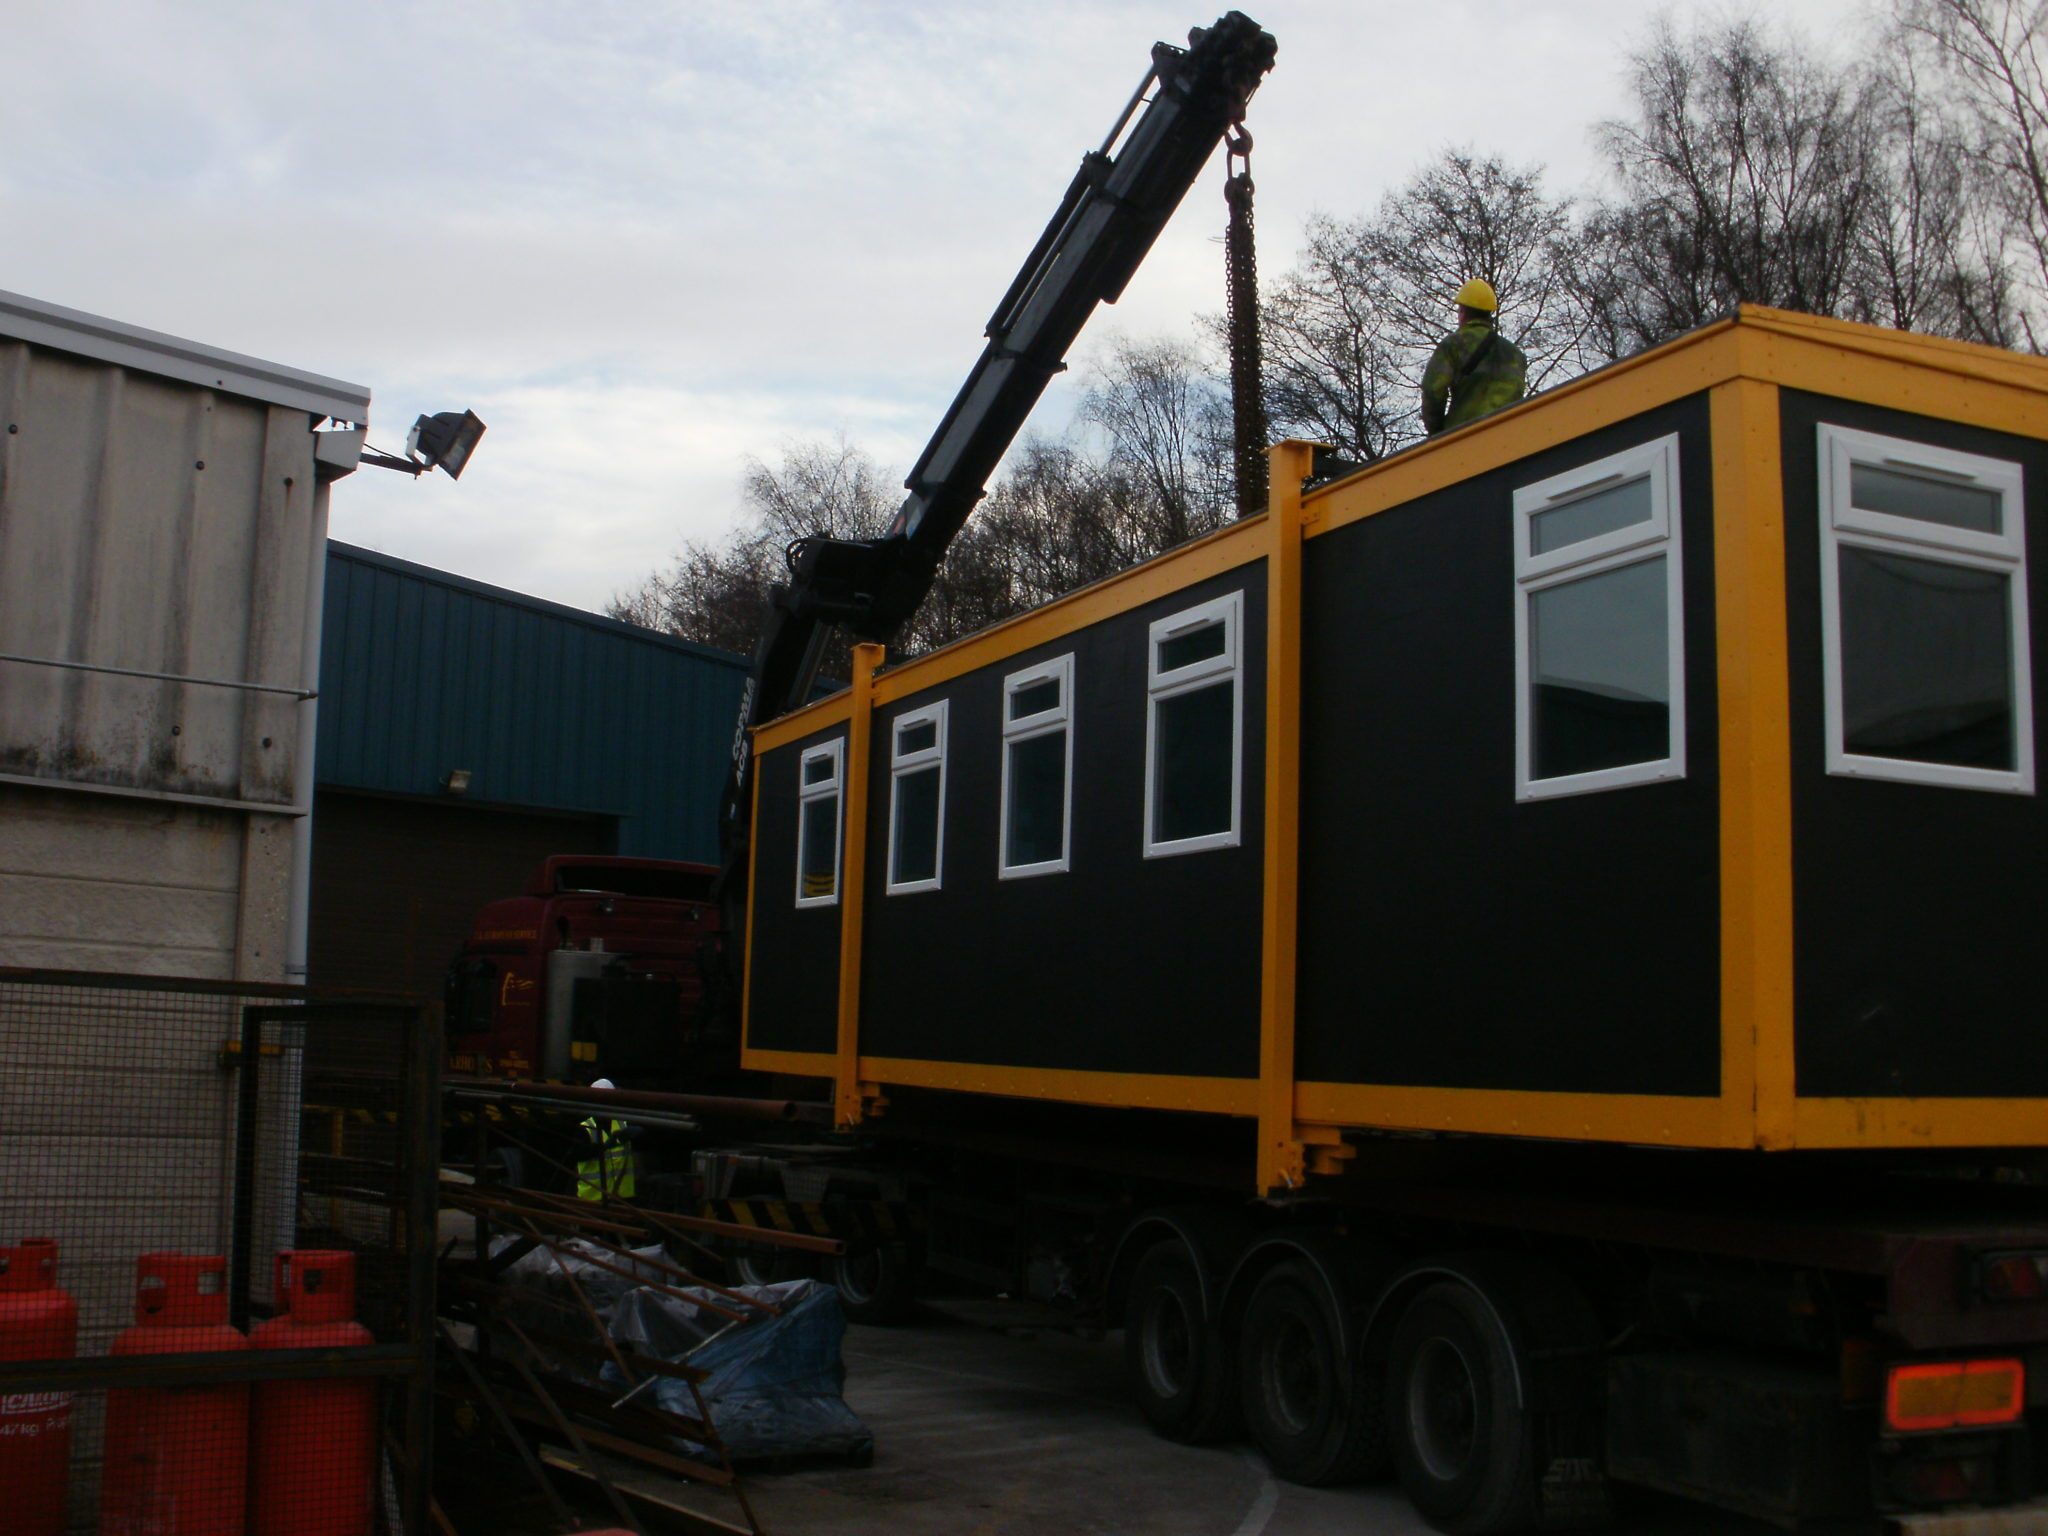 modular building being transported